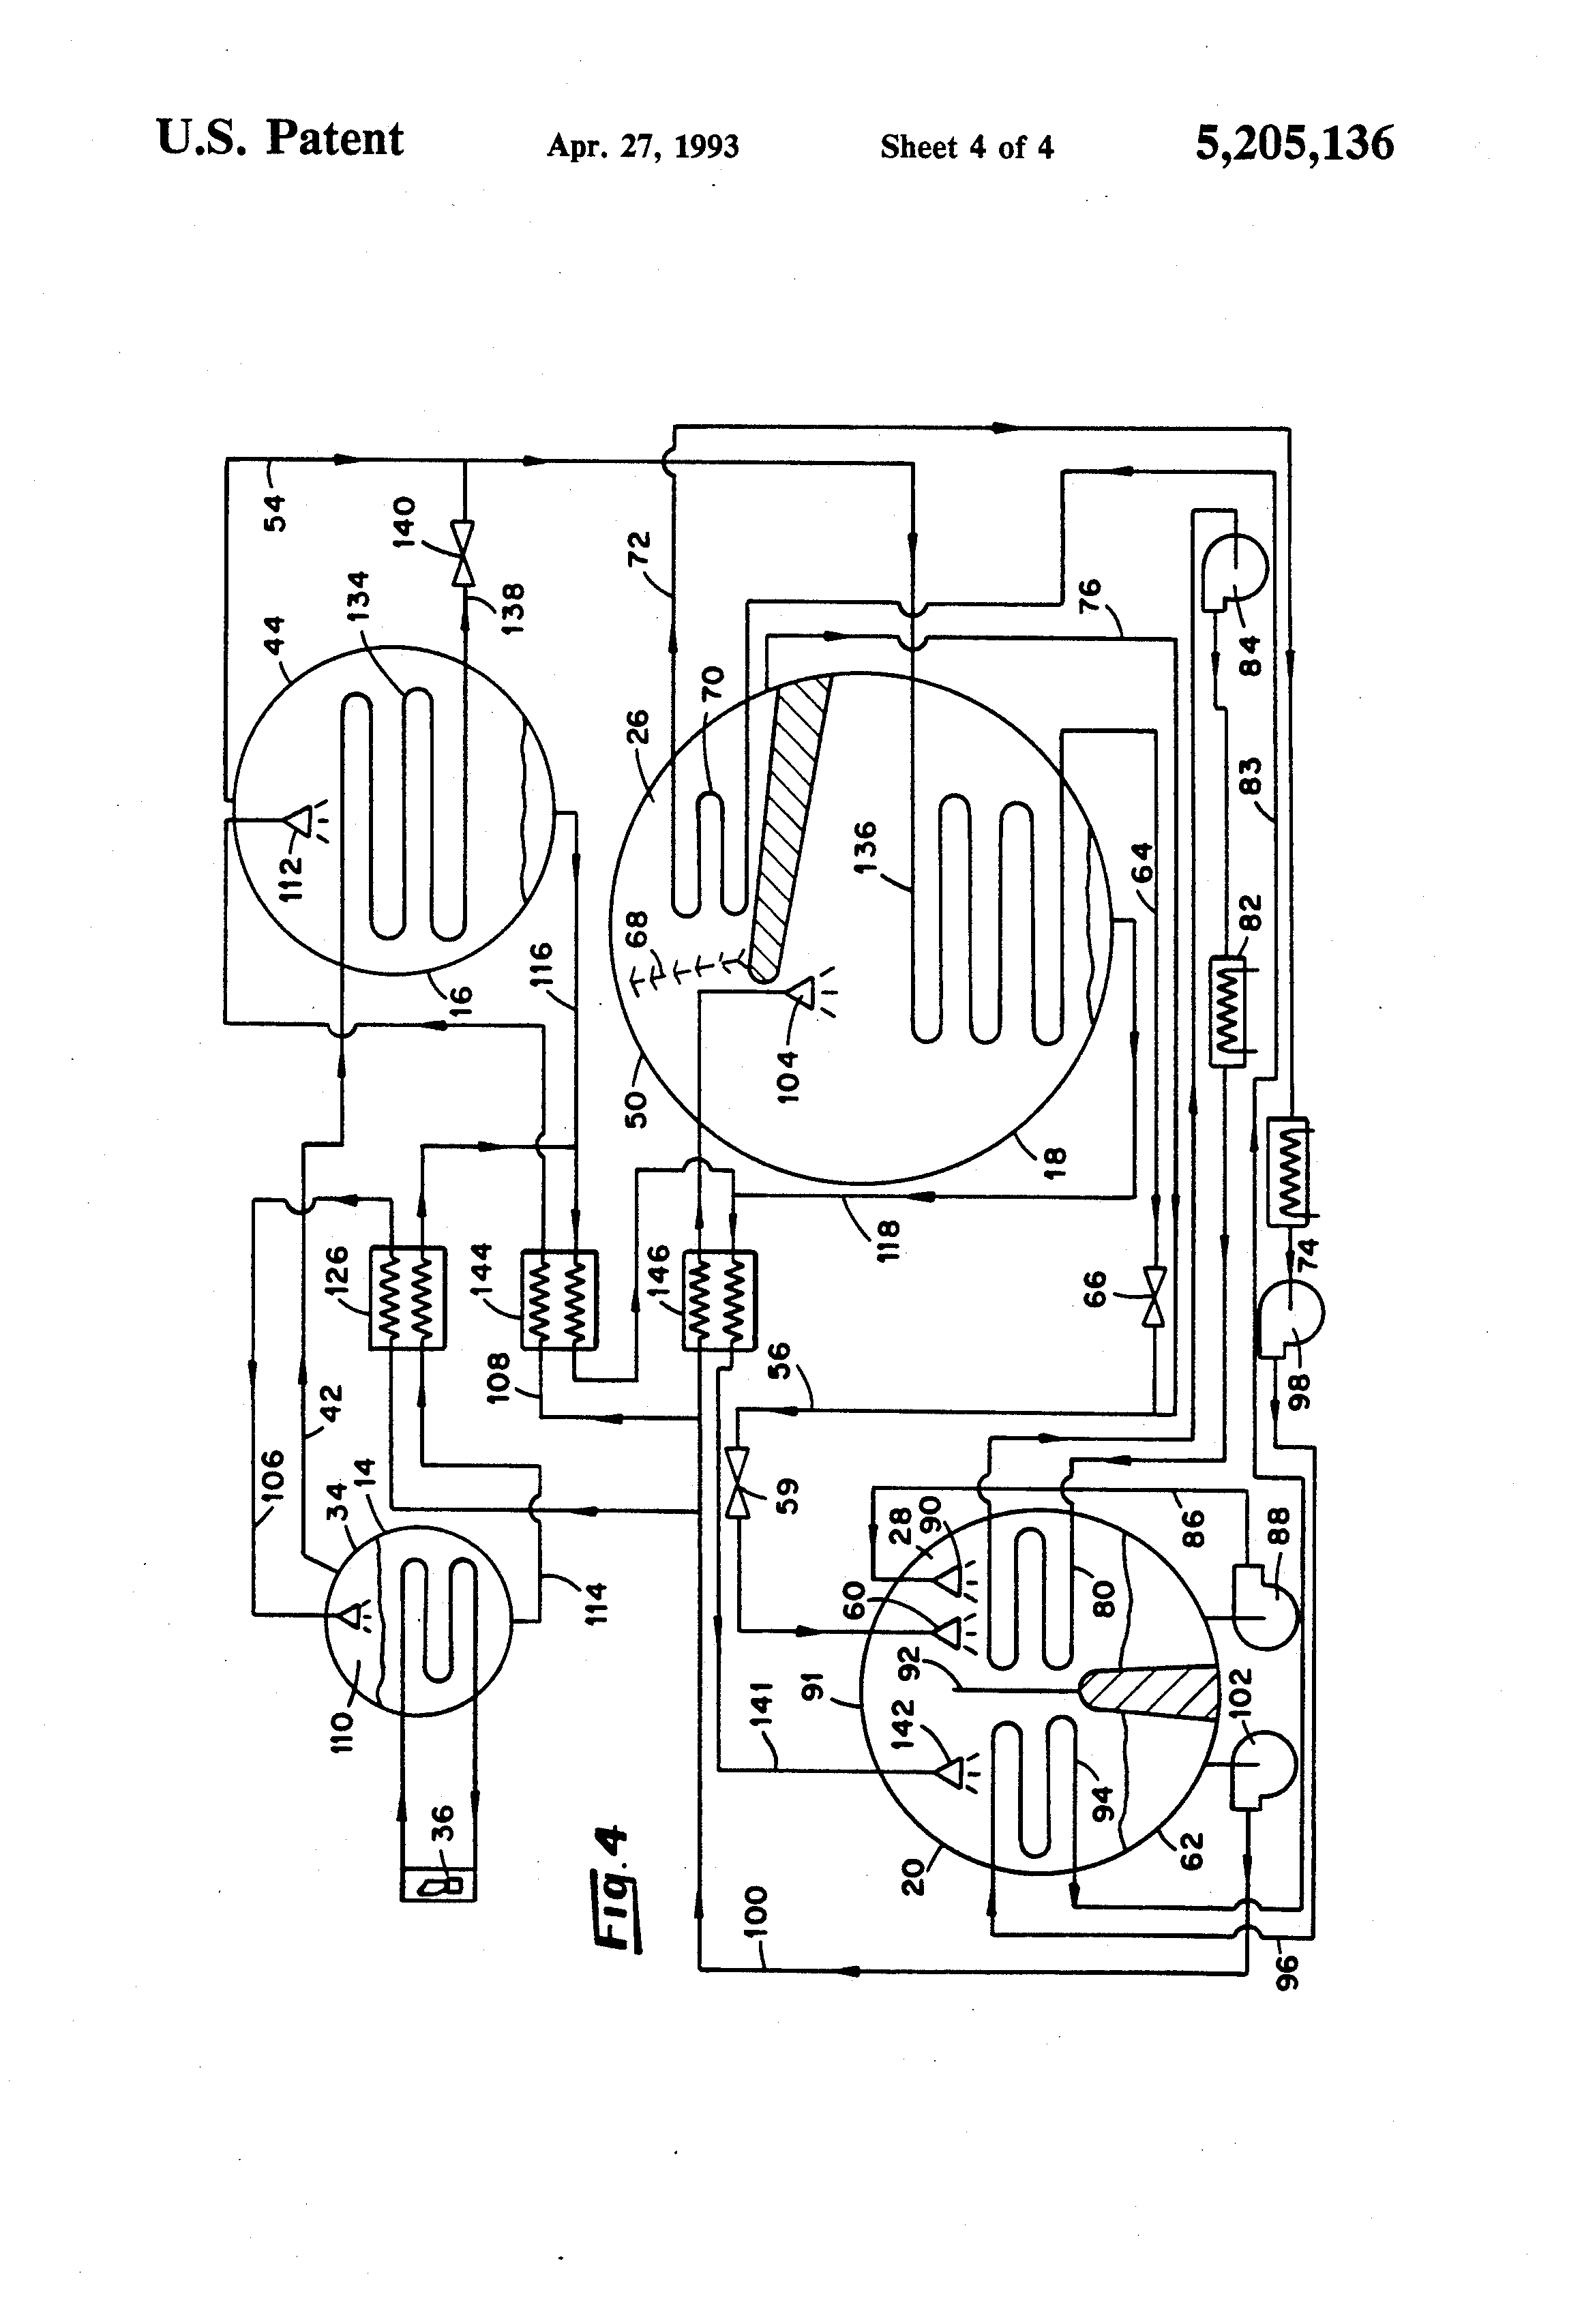 hitachi absortion chiller wiring diagram